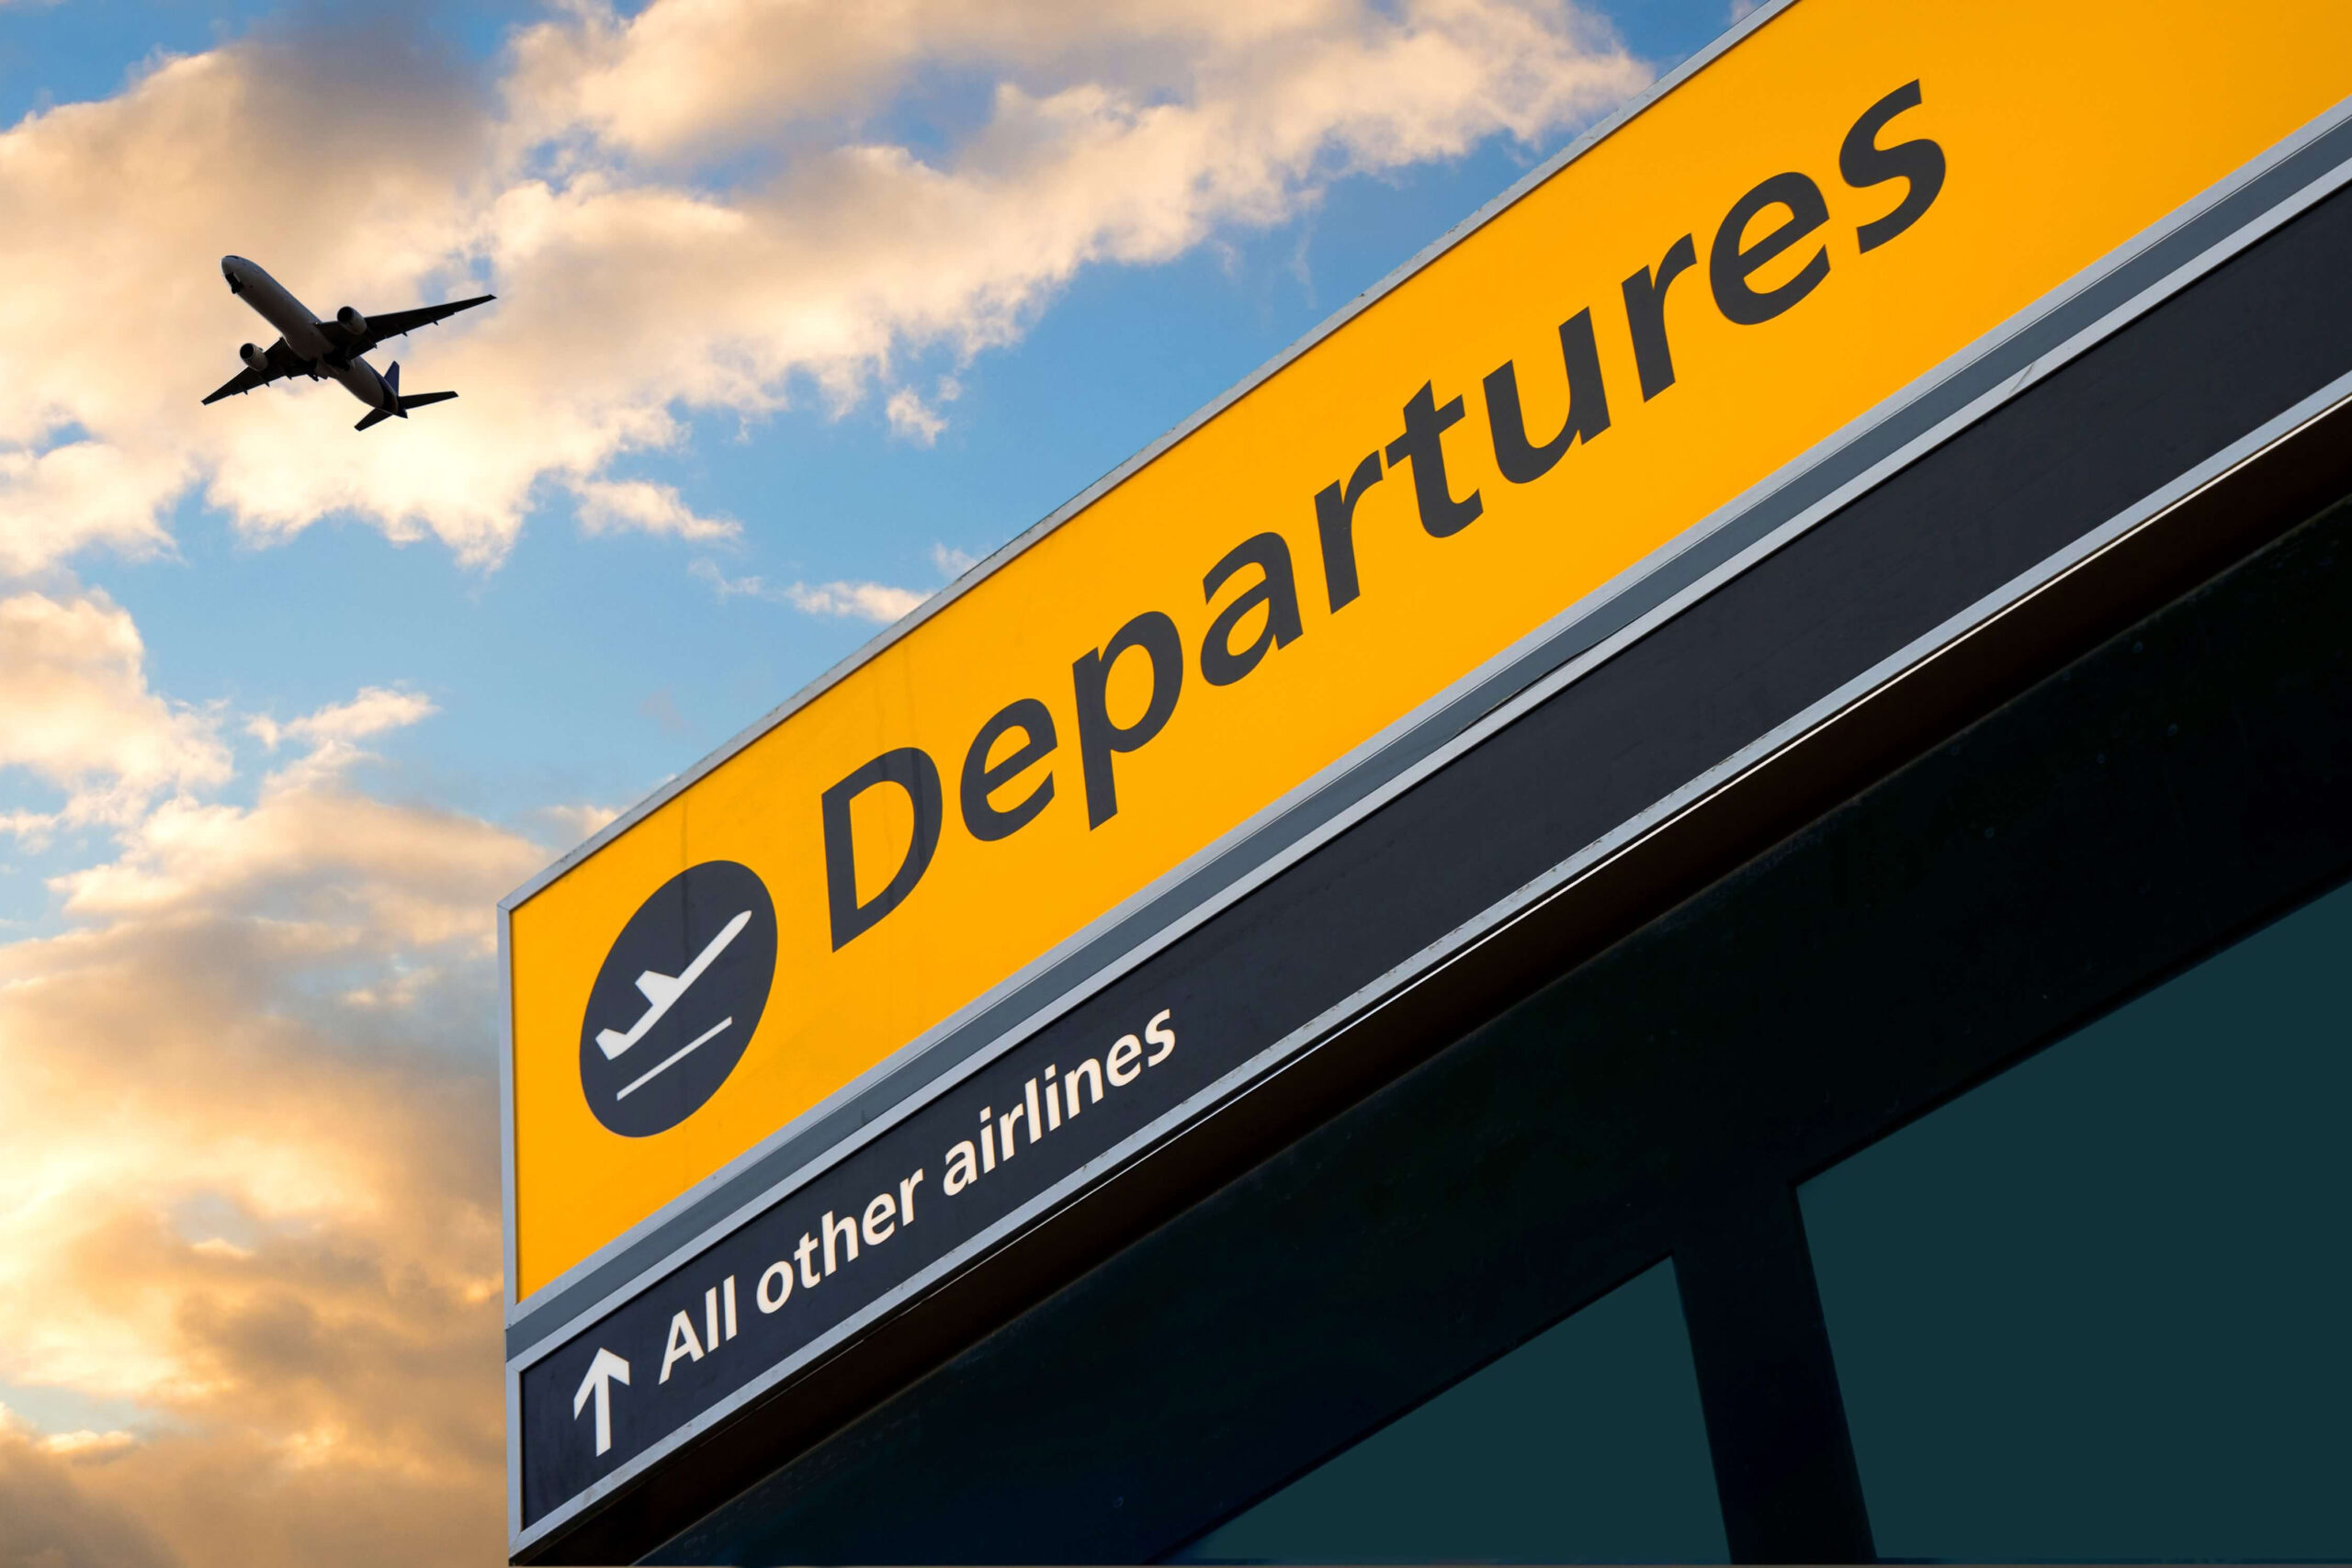 All Seasons Hire Provide Temporary Air Conditioning To Major UK Airport